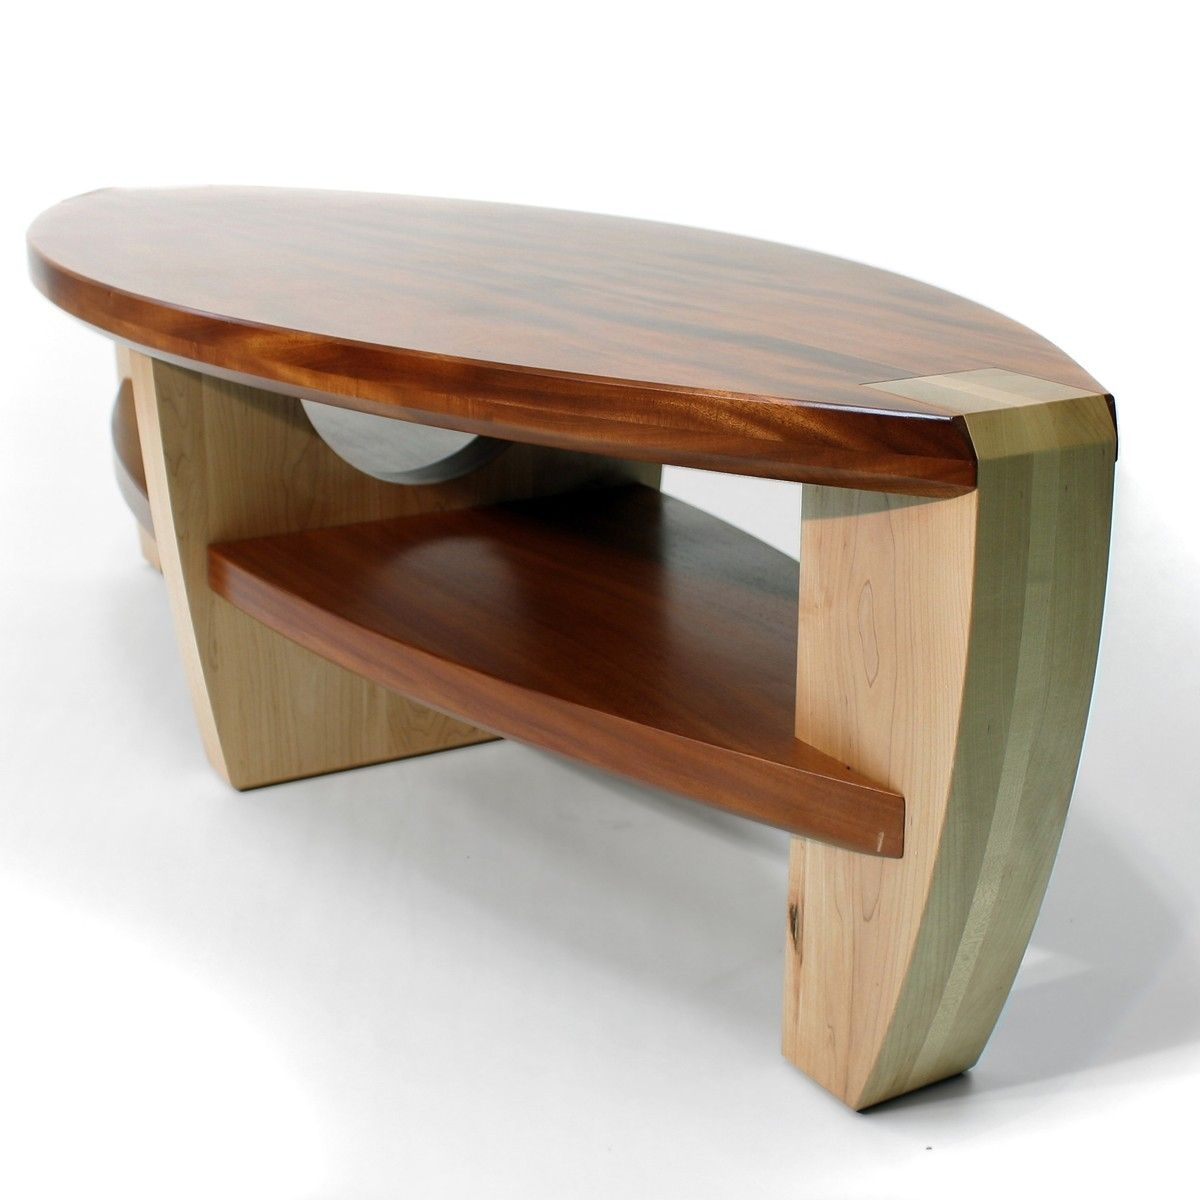 crazy coffee table design photo - 4